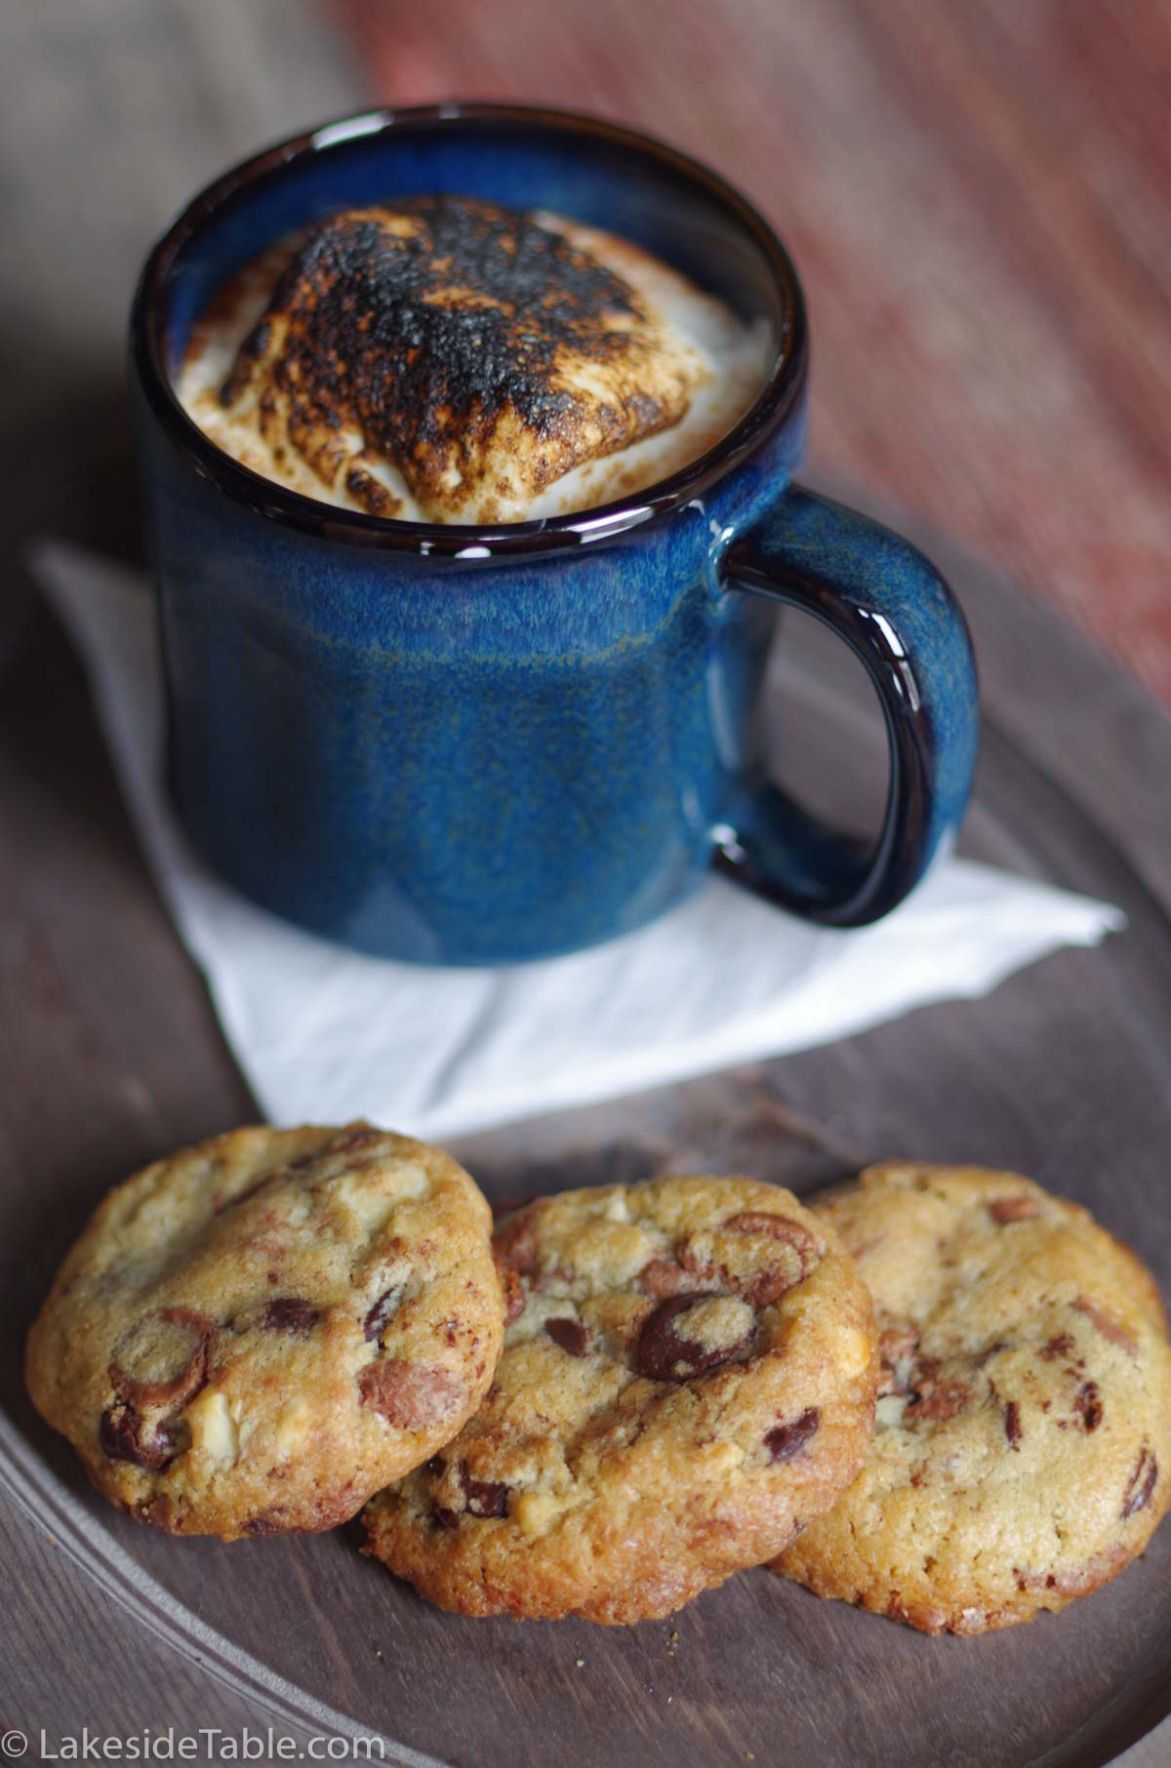 Firefly Grill Hot Cocoa and Cookies